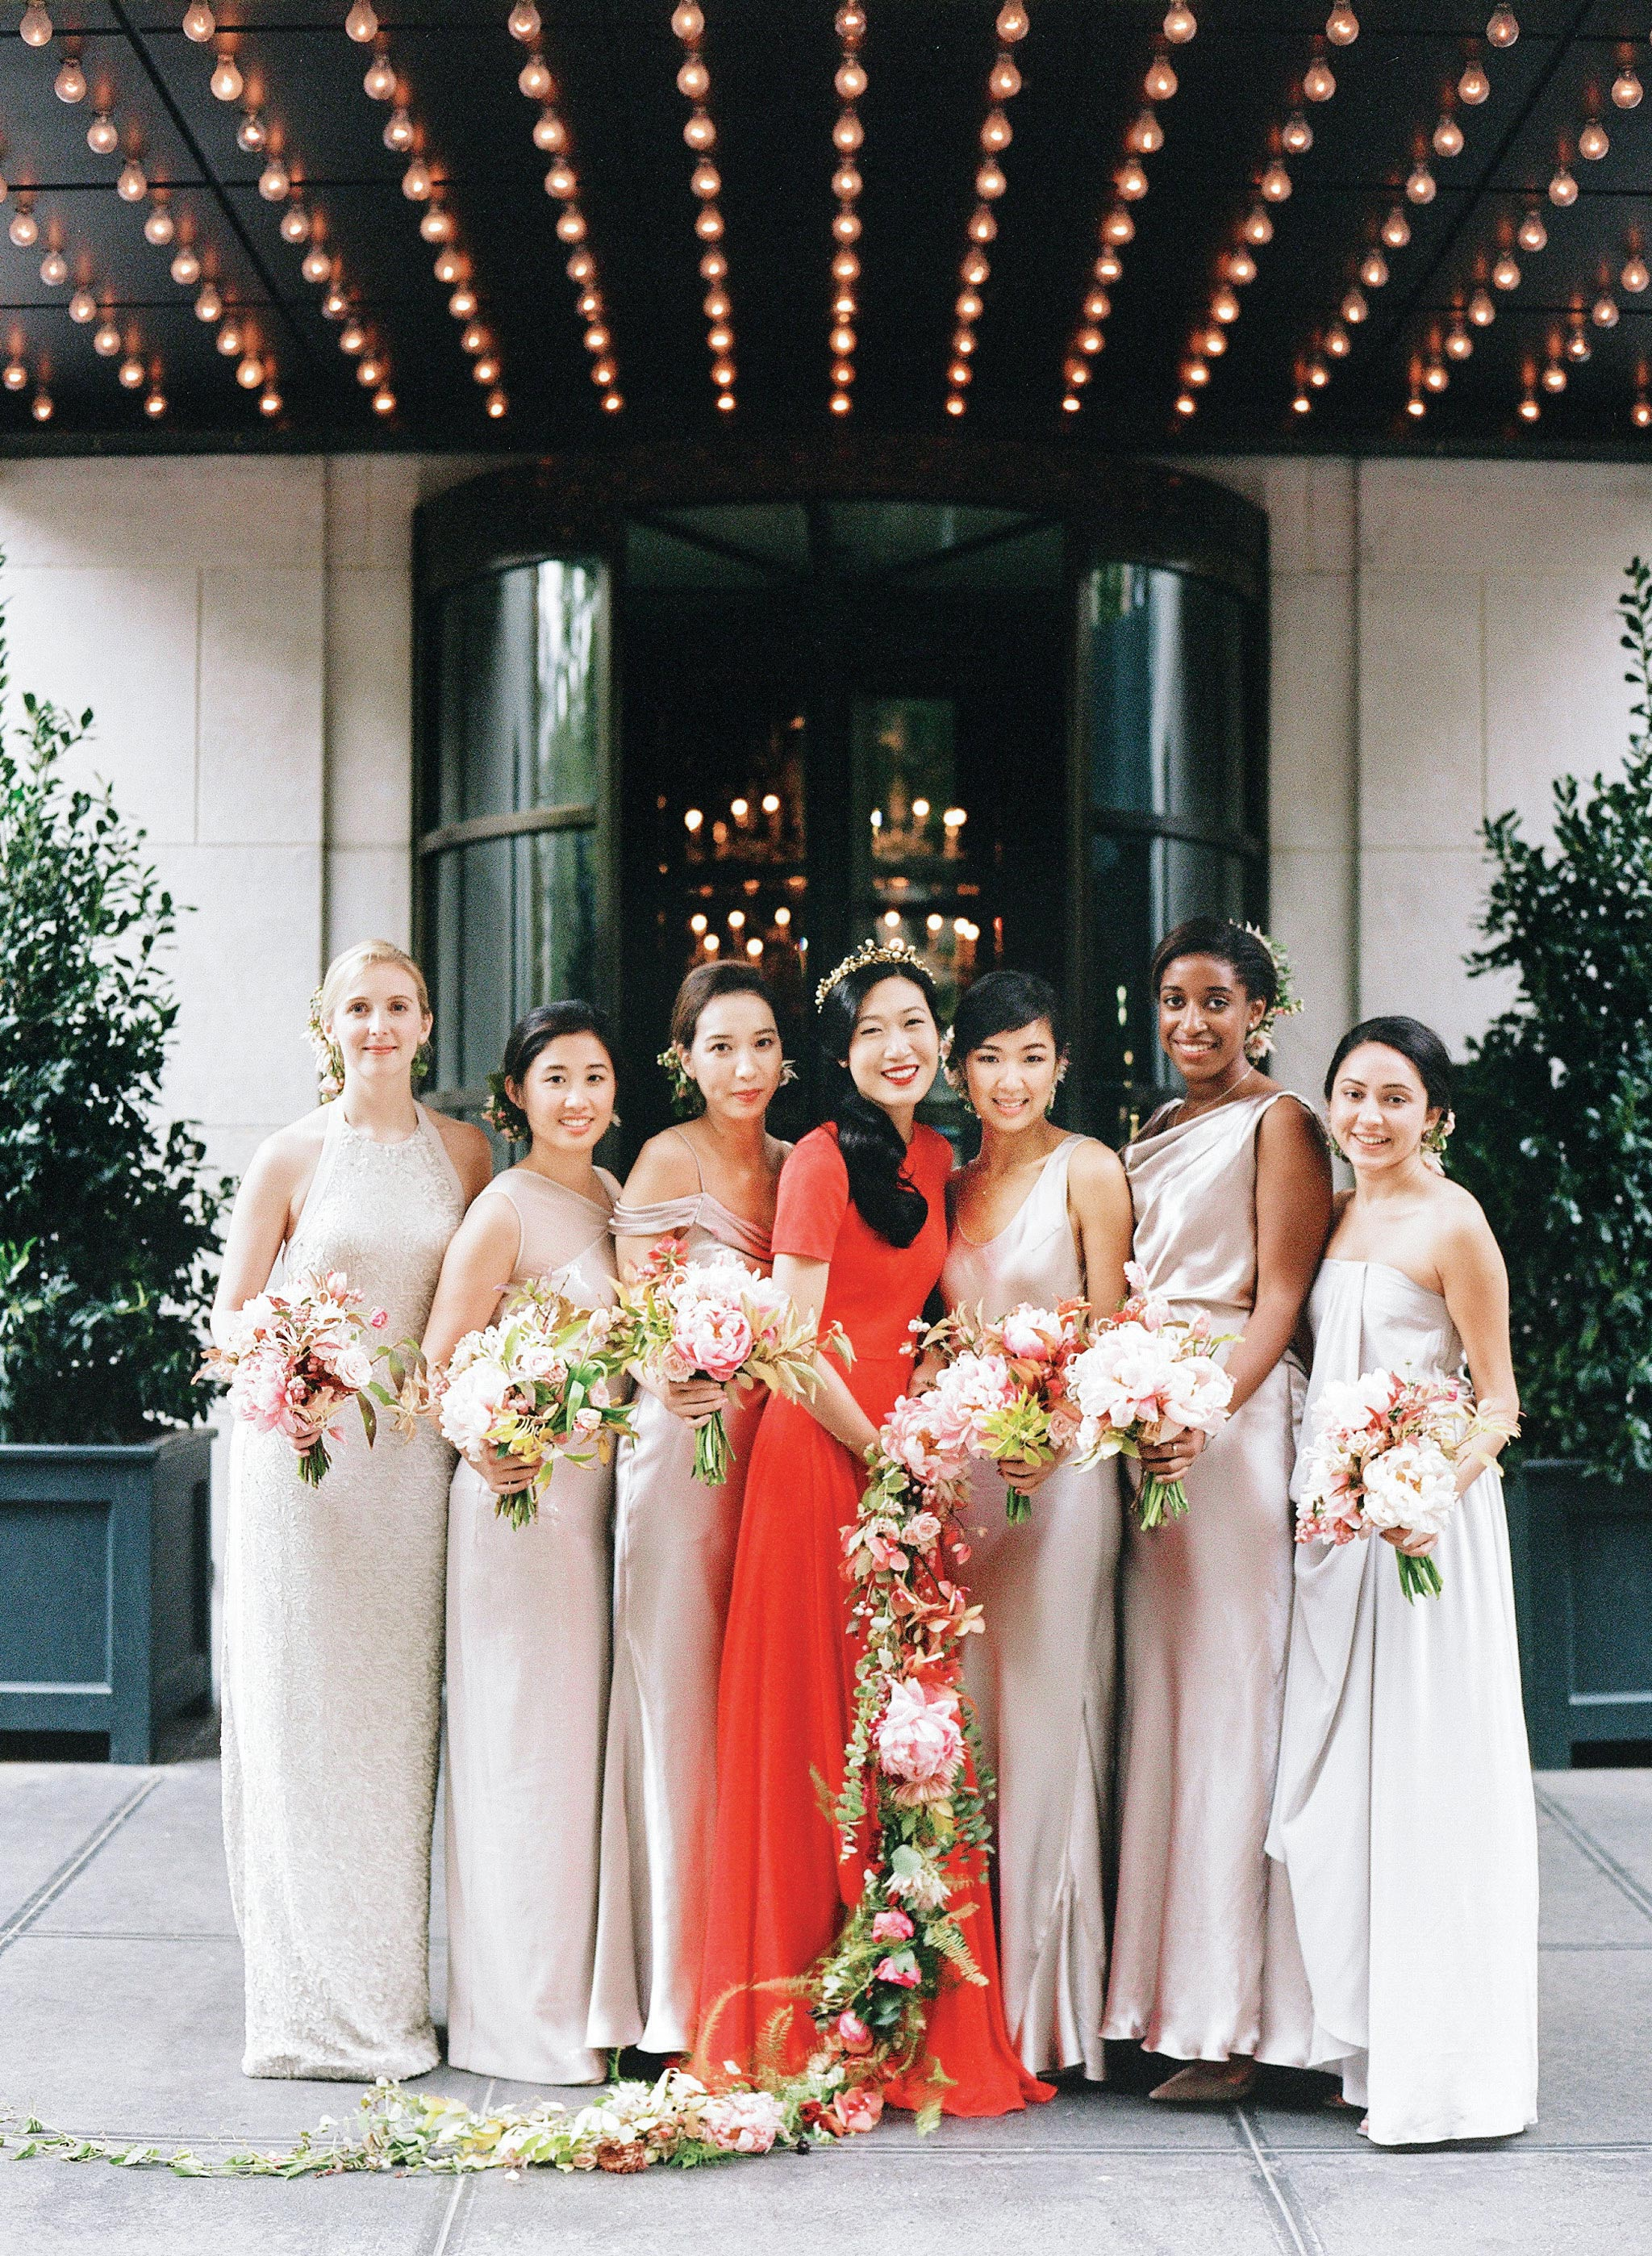 glara matthew wedding bridesmaids